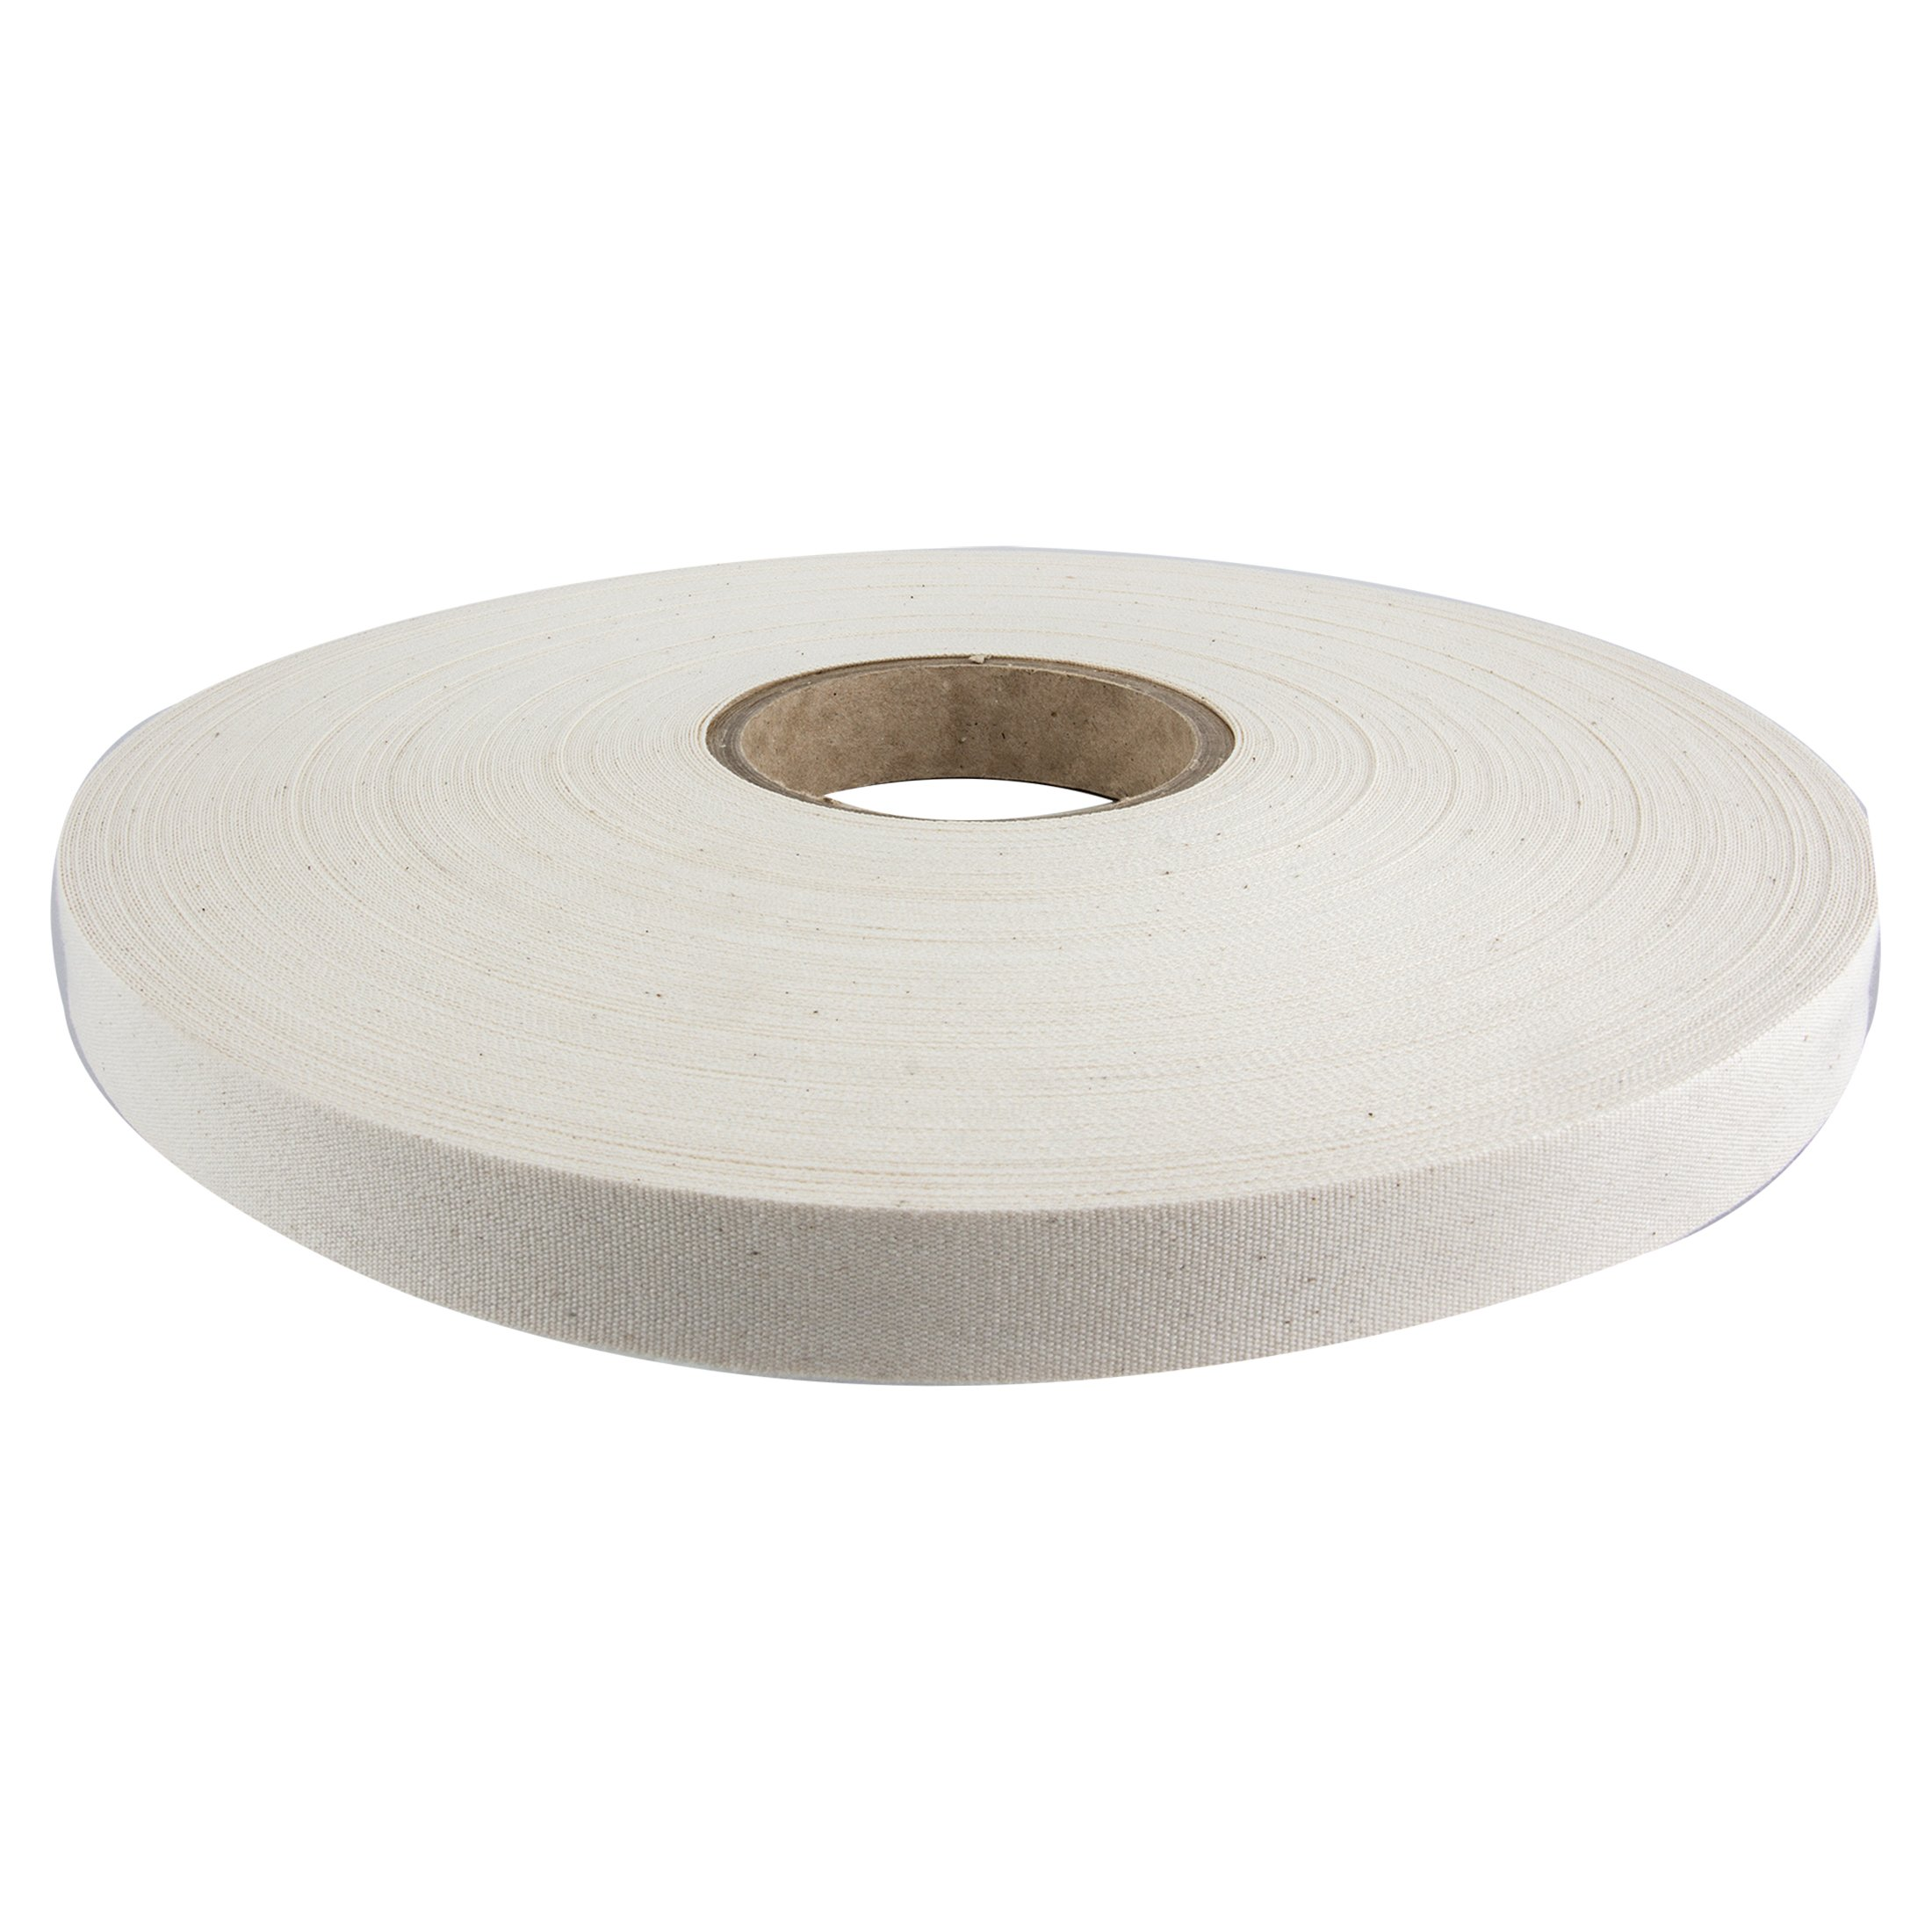 Zefal Bulk 100 M Roll Rim Tape, 22mm